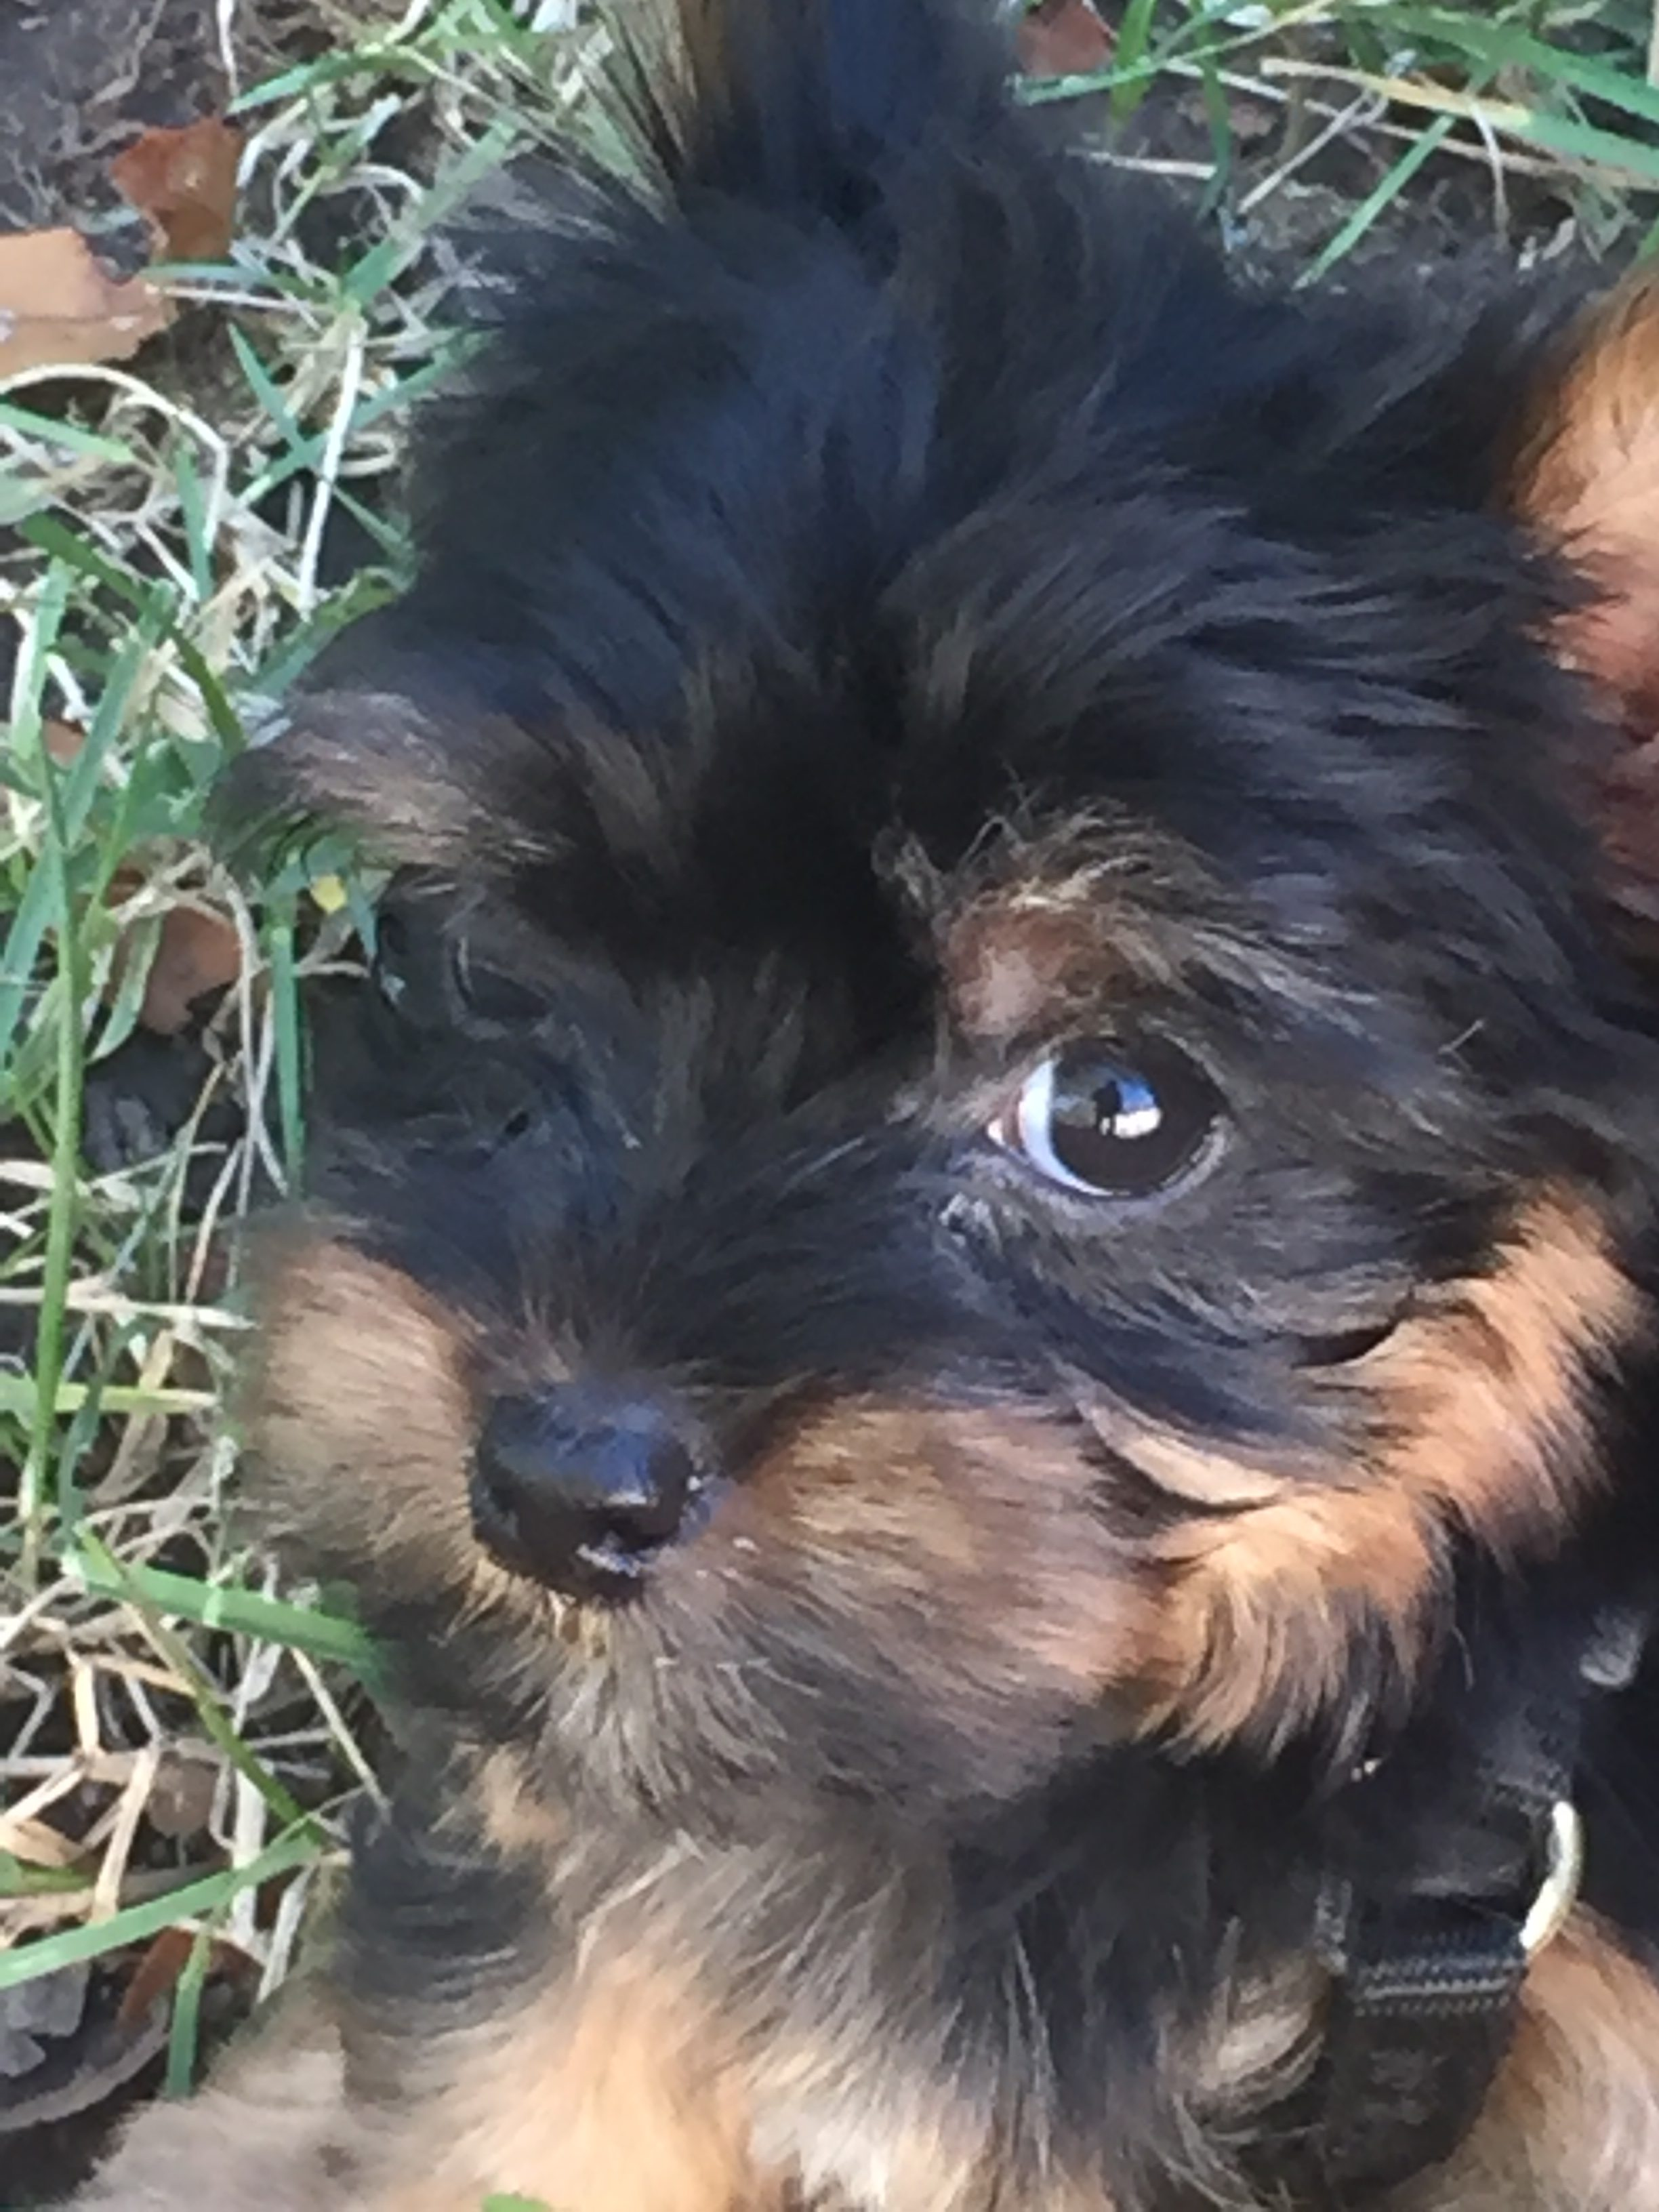 Yorkie puppy named Neo © Lynette M Burrows 2017